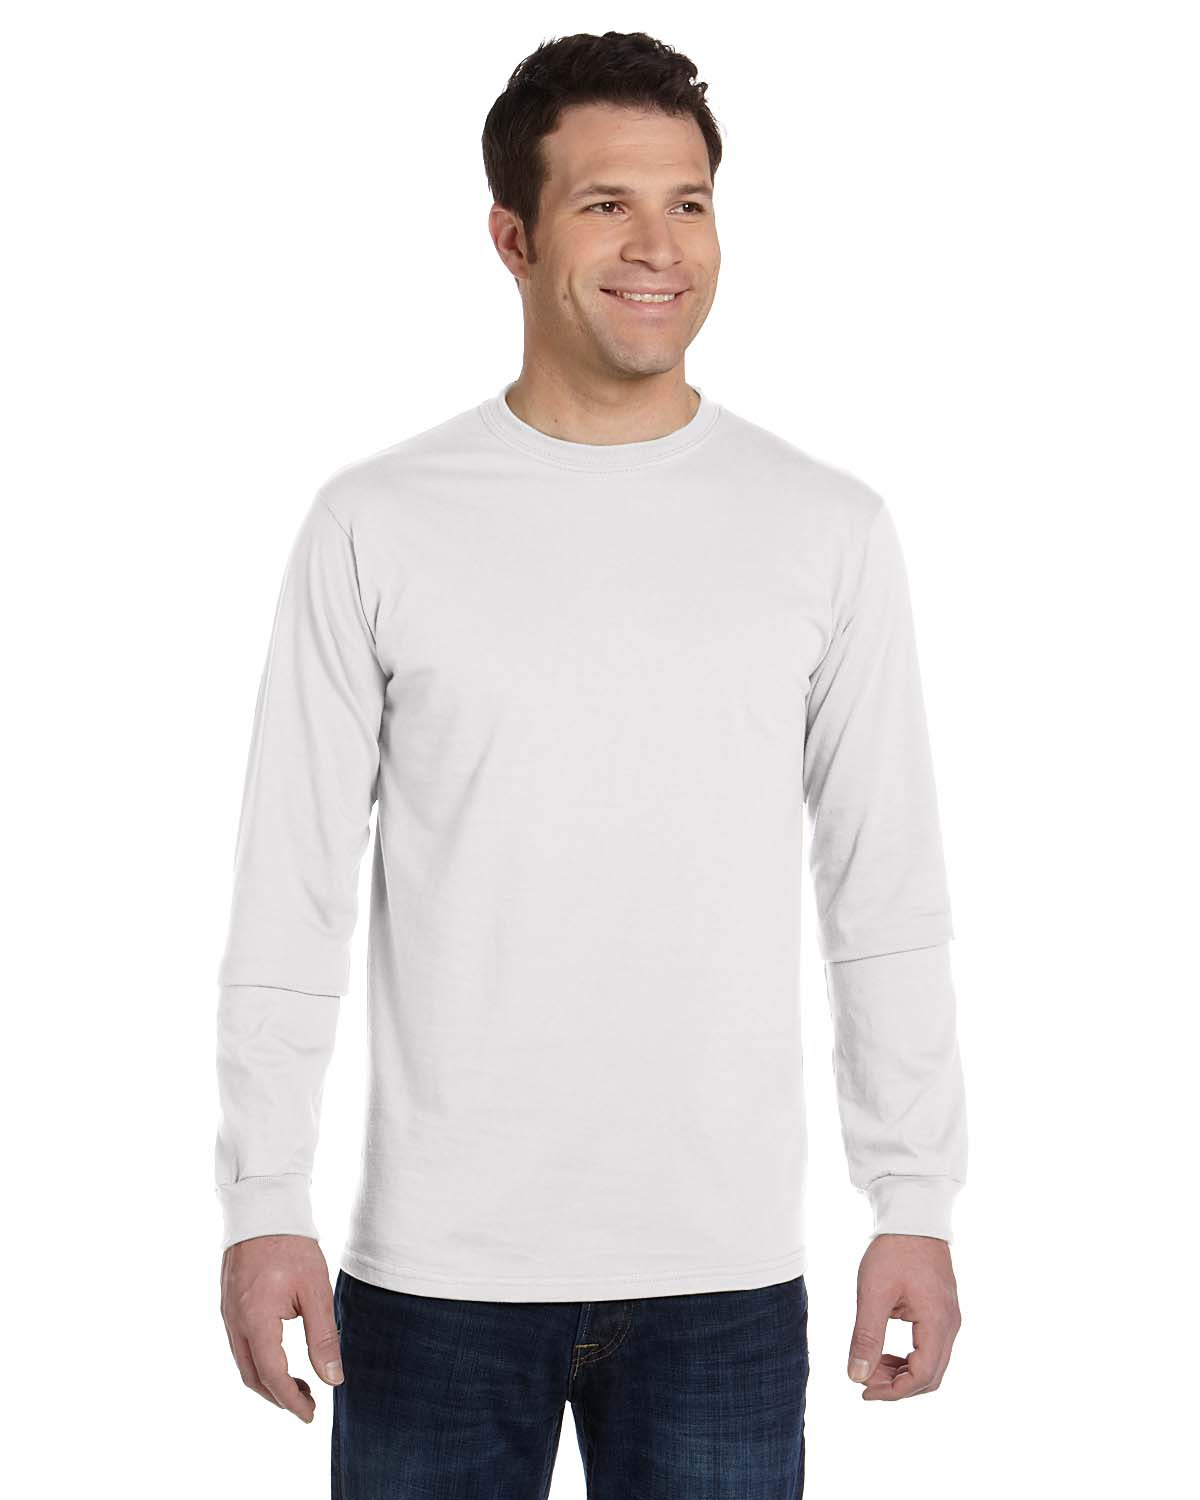 Men's Organic Cotton Ring-Spun Long-Sleeve T-Shirt - Shirts, T-Shirts